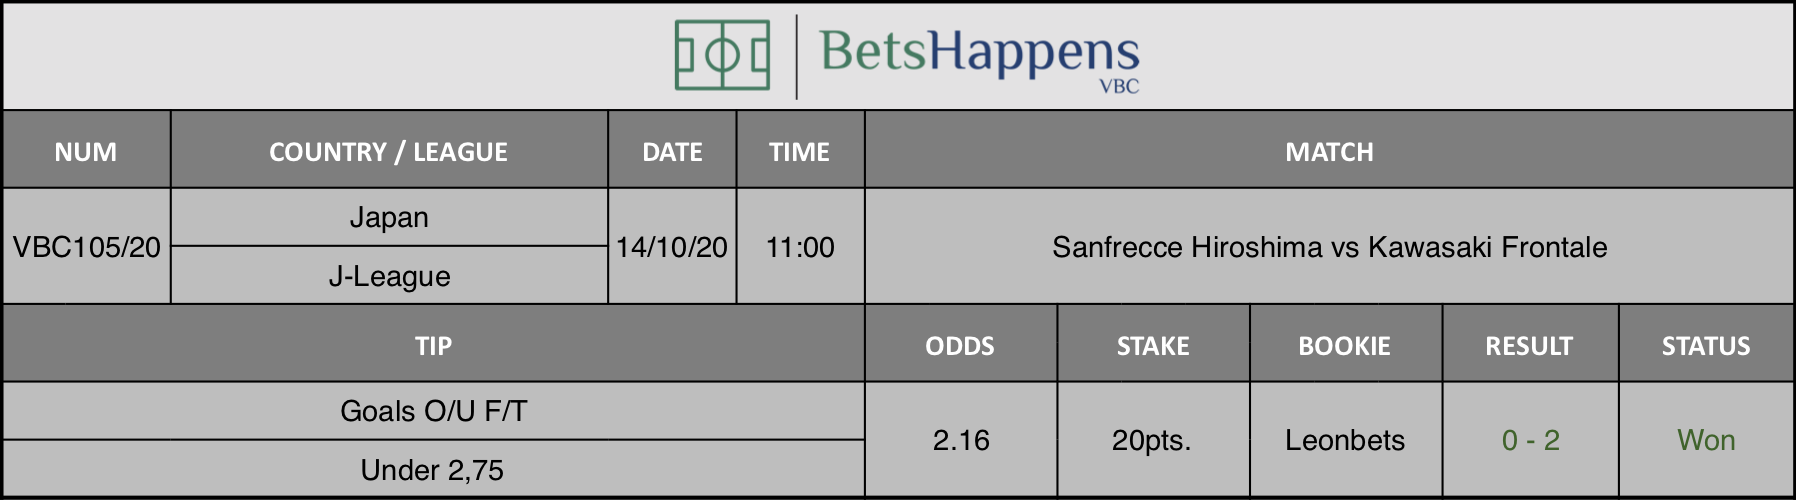 Results of our advice for the Sanfrecce Hiroshima vs Kawasaki Frontale match in which Goals O / U F / T Under 2,75 is recommended.